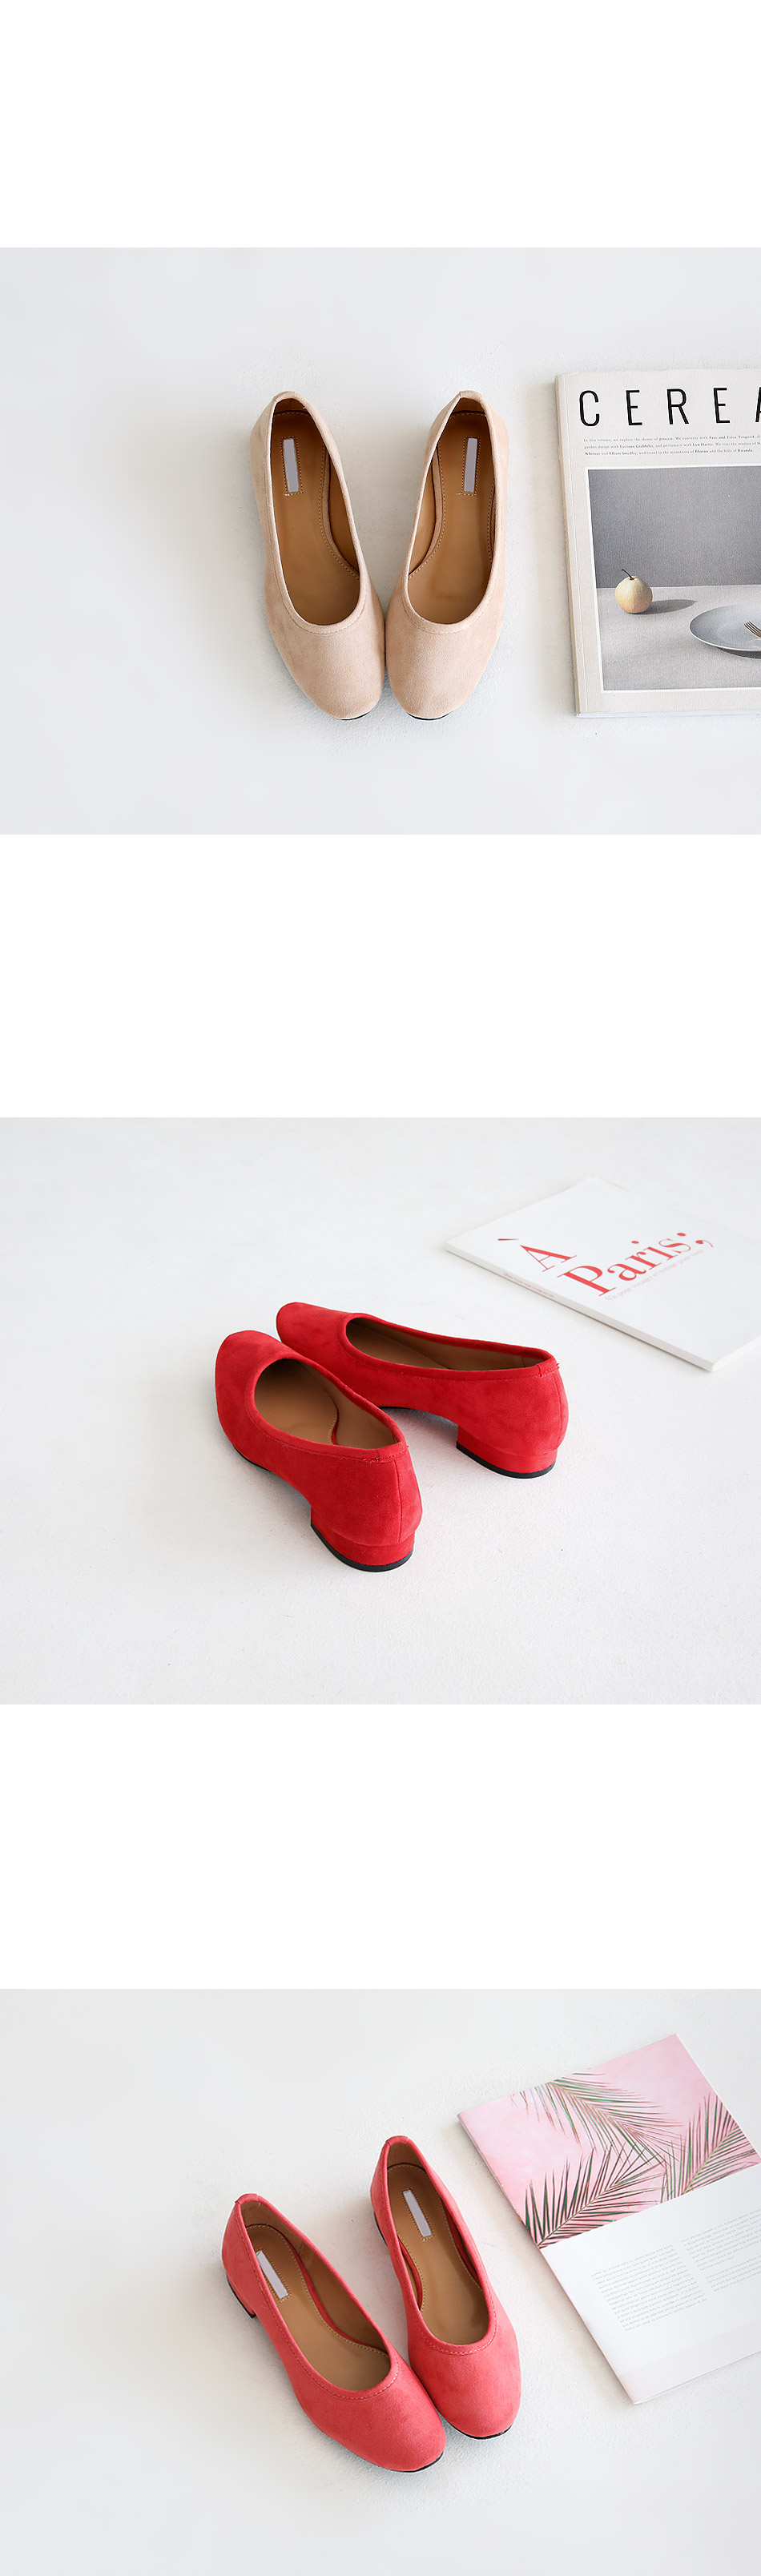 Robbens Flat Shoes 2cm